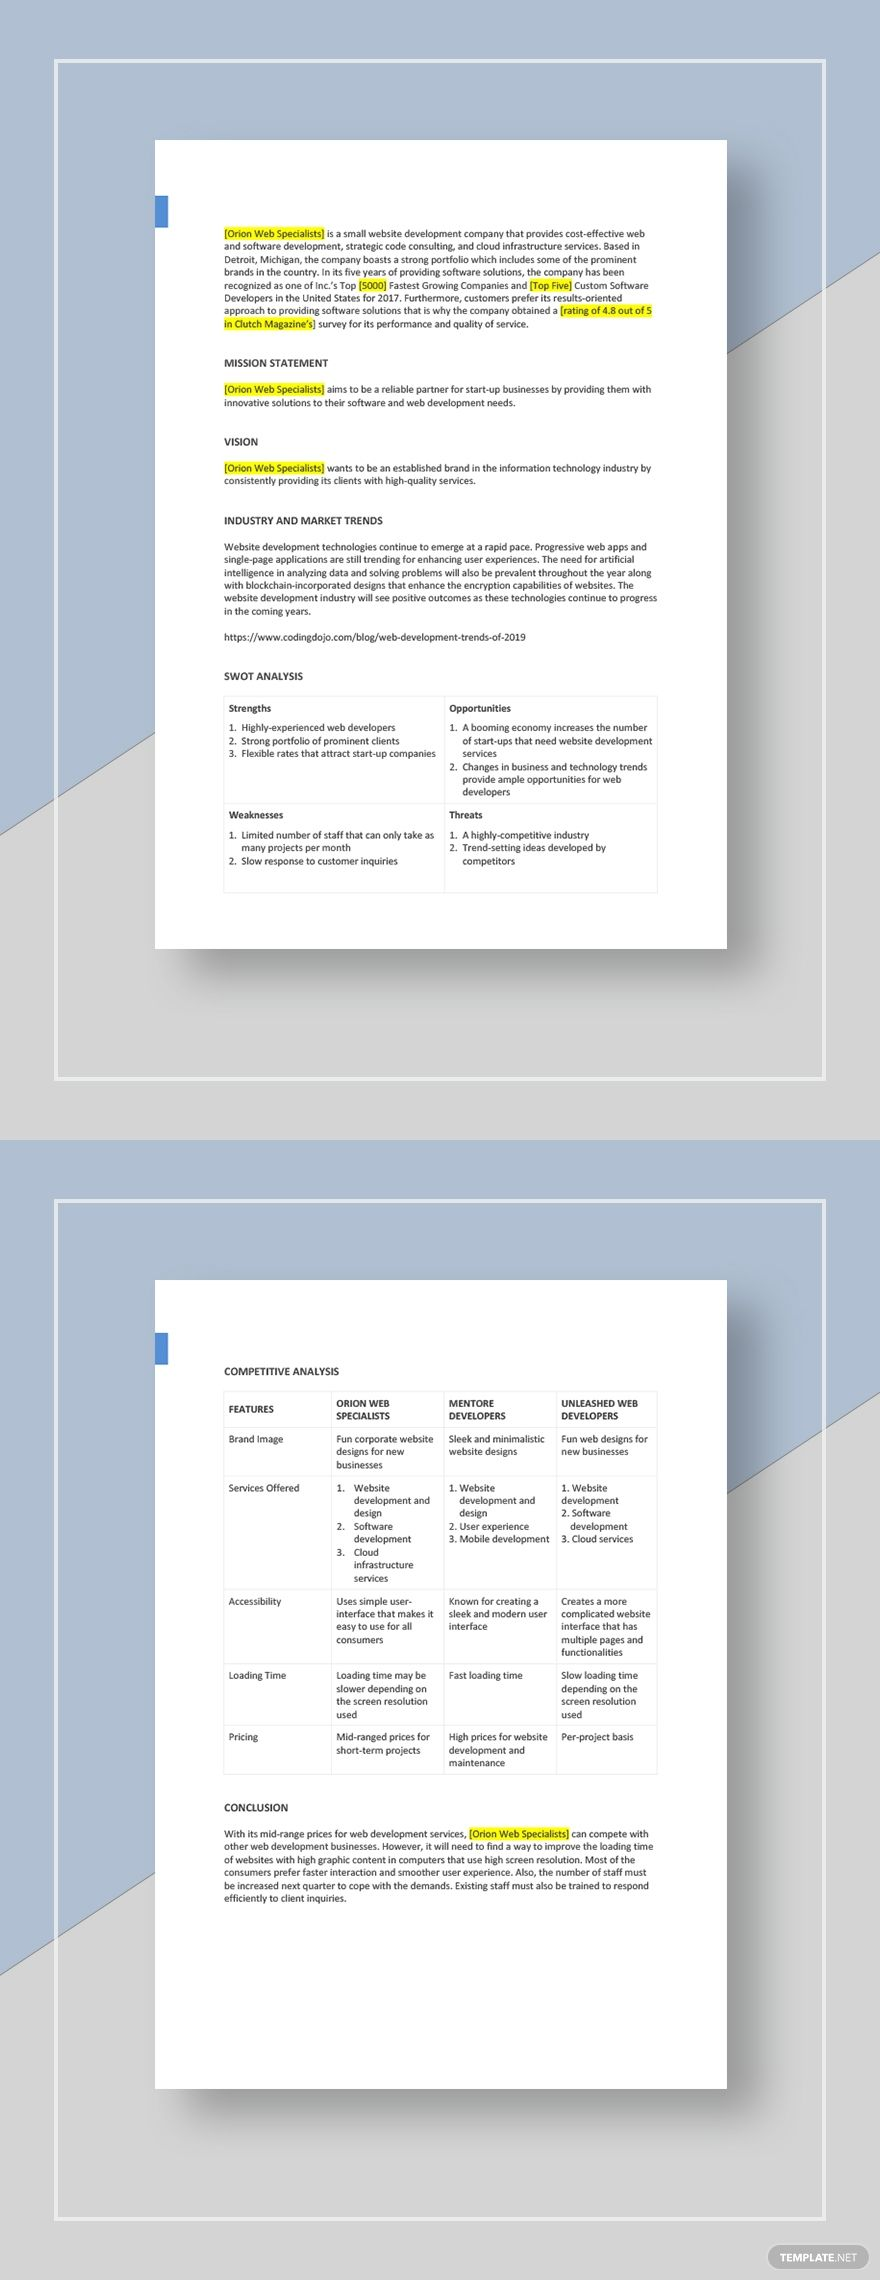 Small Business Competitive Analysis Template Word (DOC